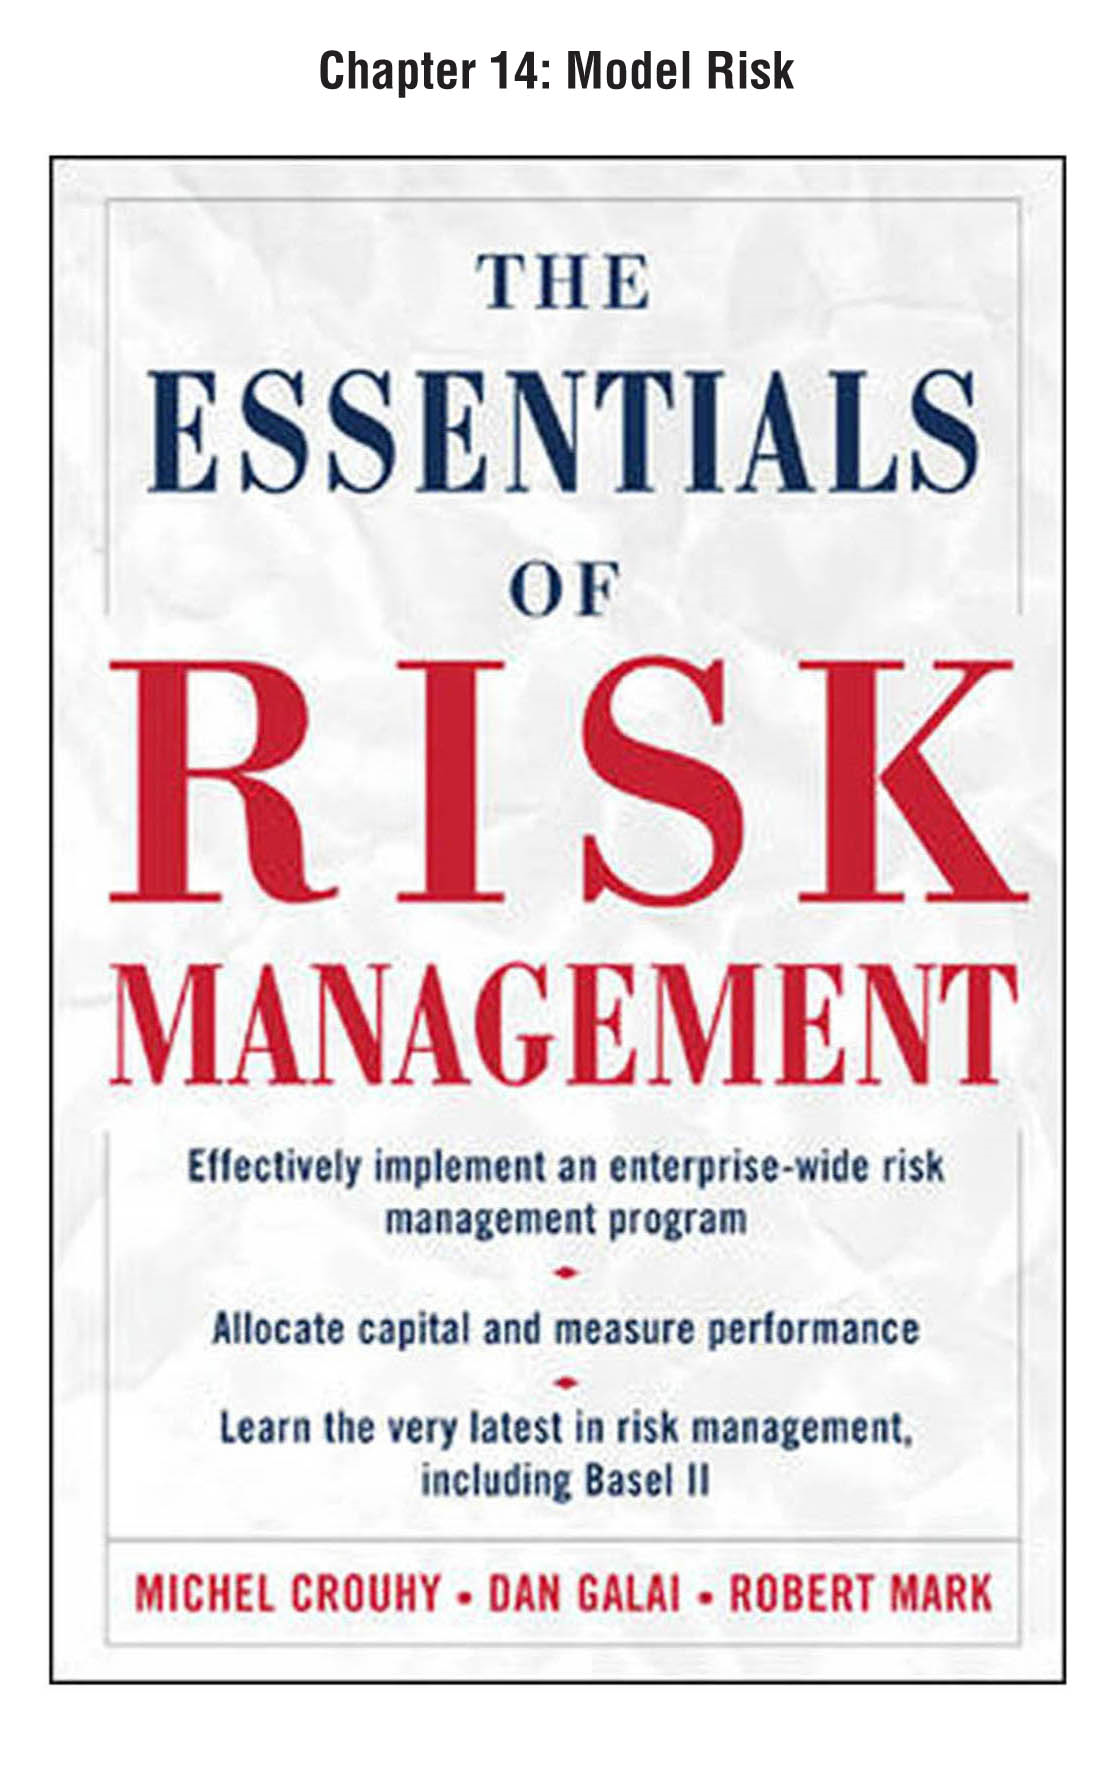 The Essentials of Risk Management, Chapter 14 - Model Risk By: Michel Crouhy,Dan Galai,Robert Mark